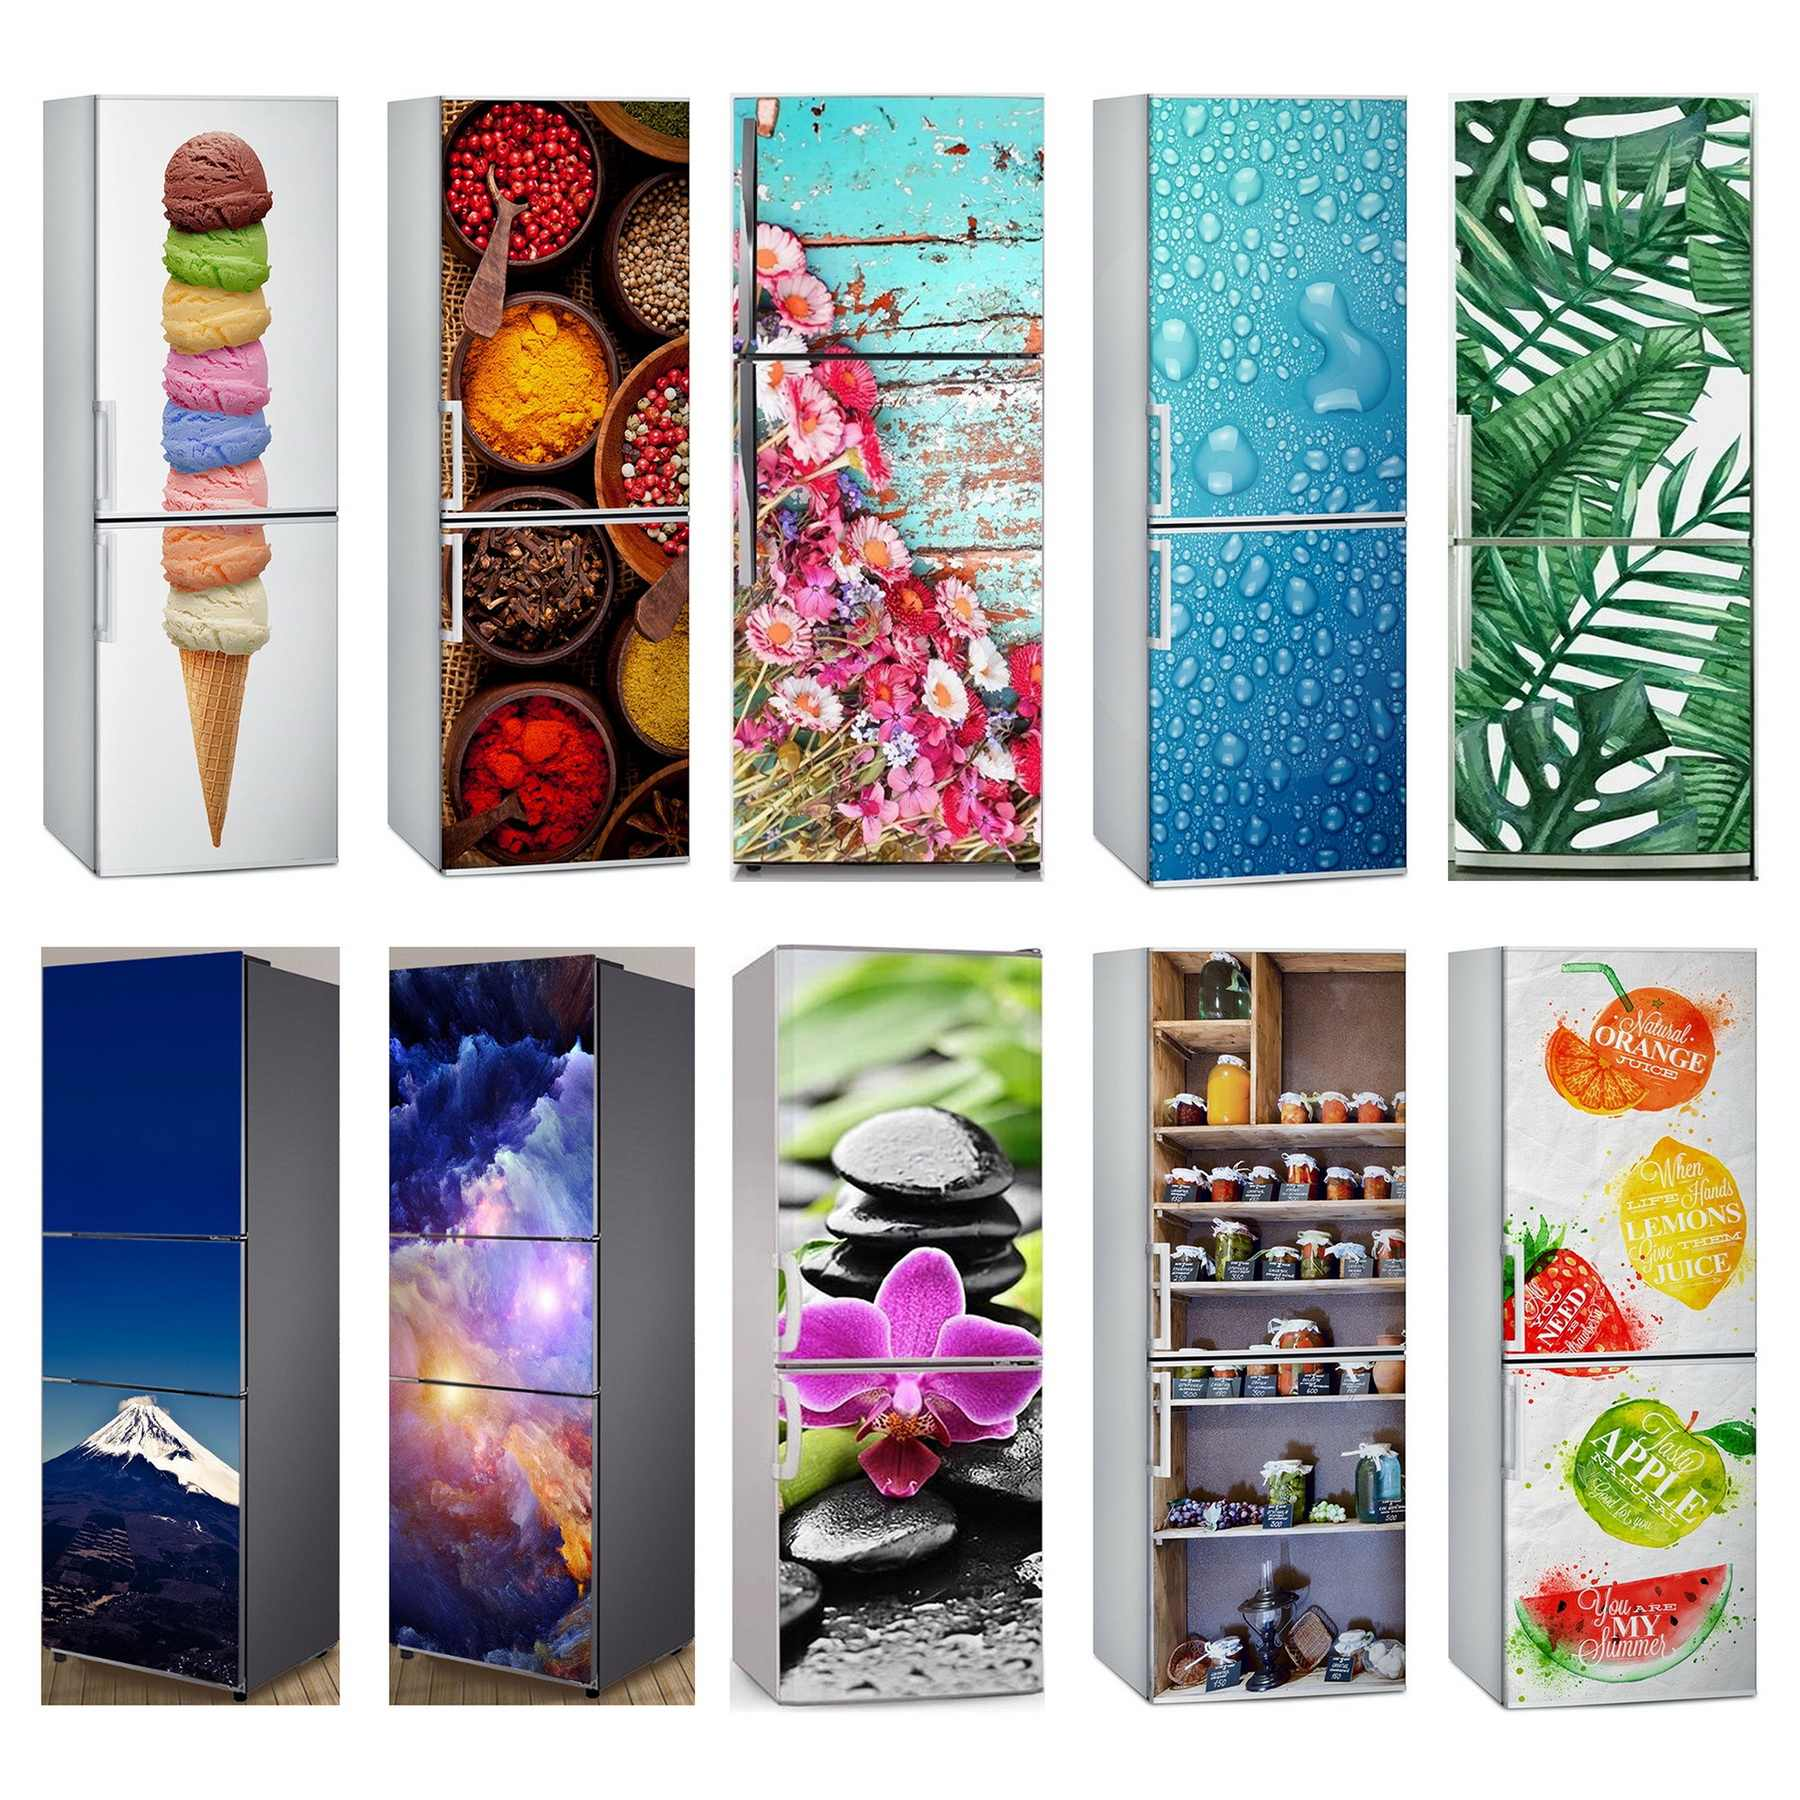 Wholesale 3D Fruit Vegetables Self Adhesive Dishwasher Refrigerator Freeze Sticker Kid's Art Fridge Door Cover Wallpaper